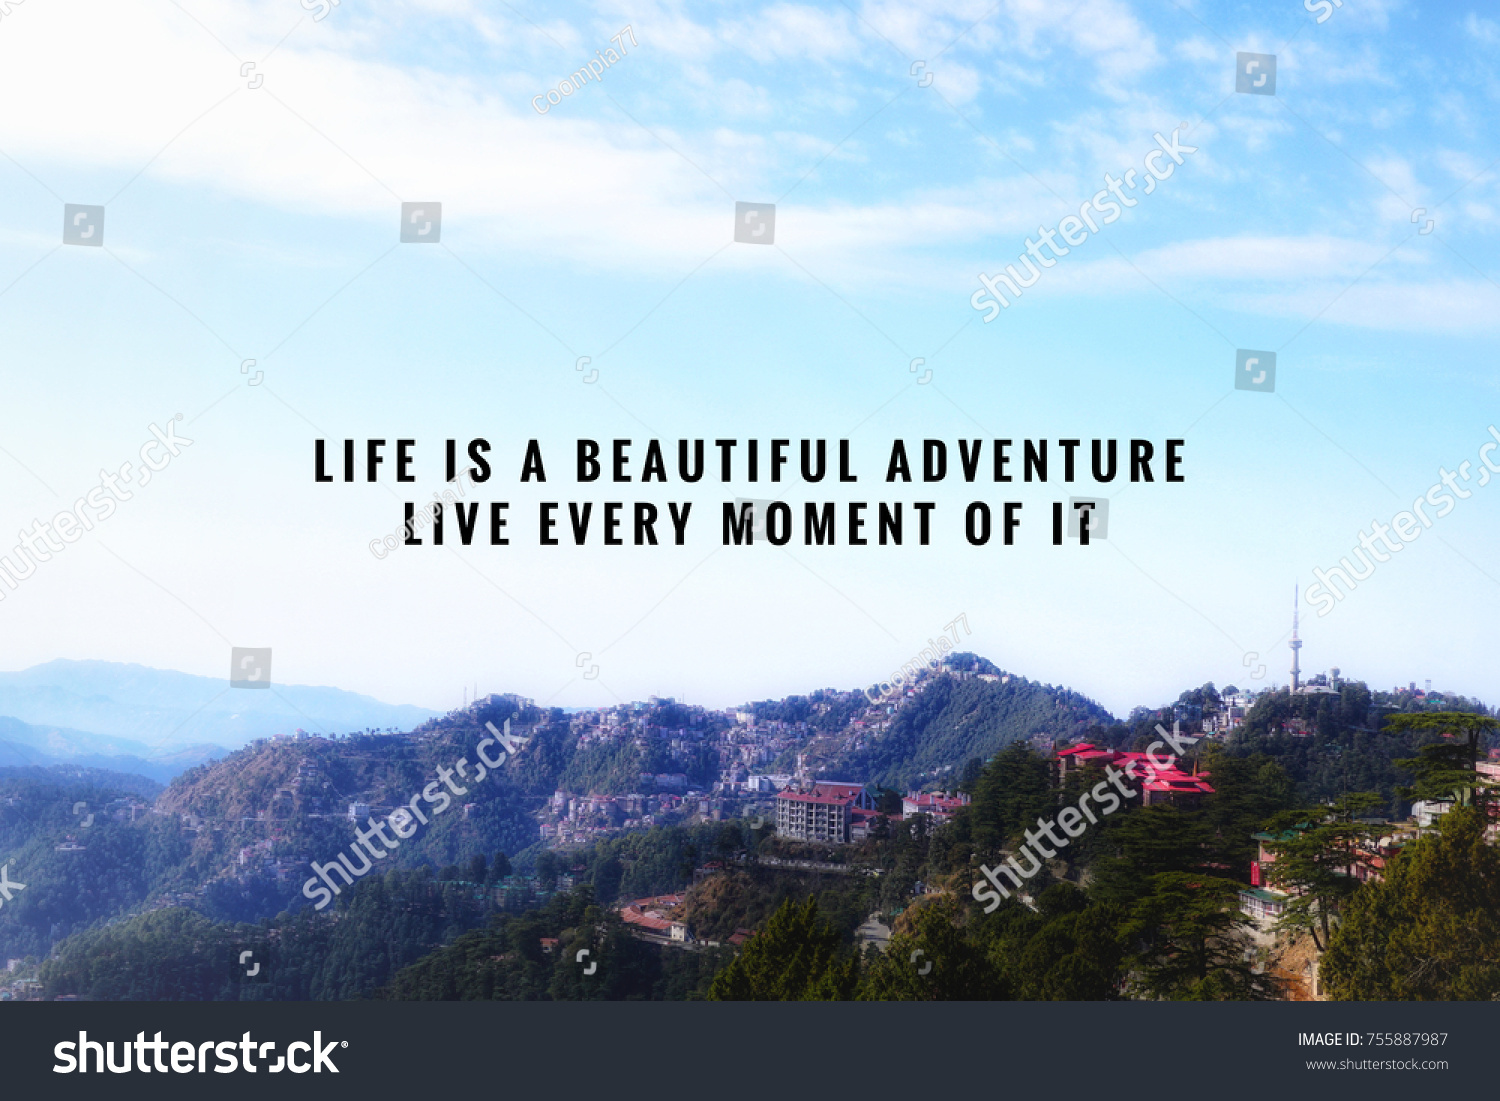 Motivational Inspirational Quotes About Life Motivational Inspirational Quotes Life Beautiful Adventure Stock